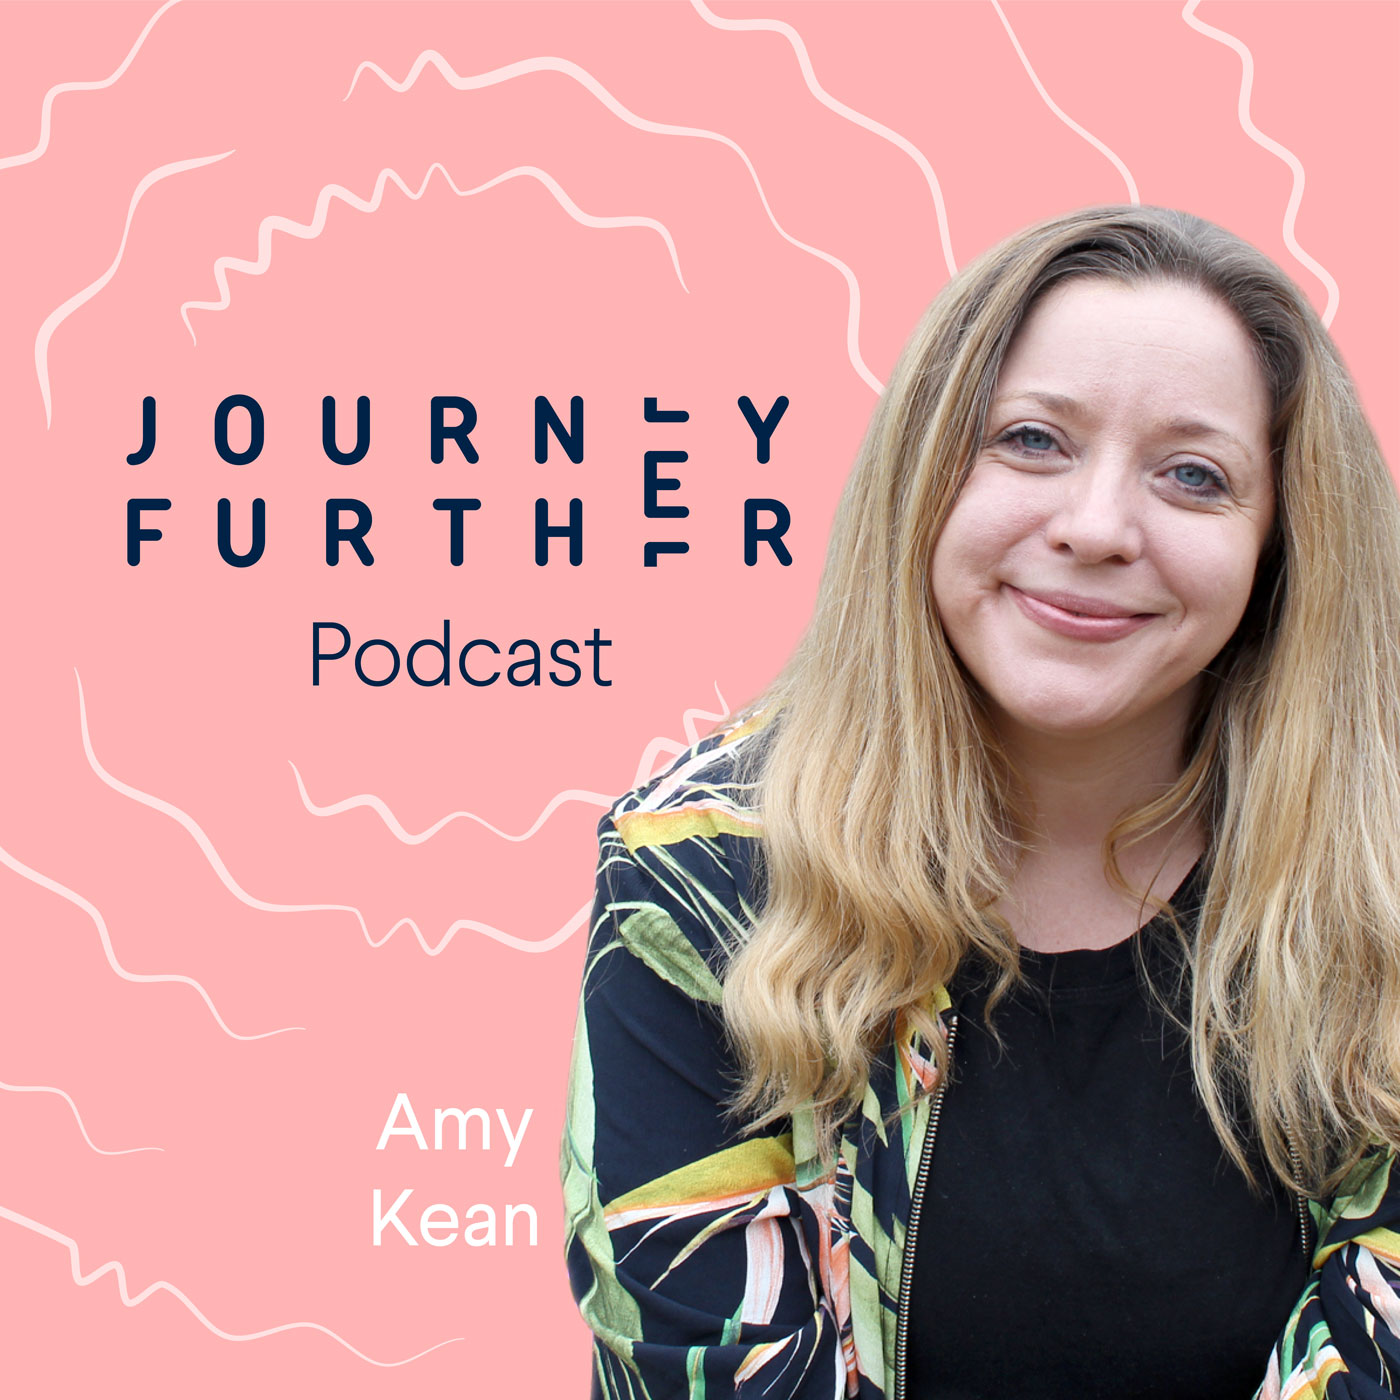 Fighting for DICE (Diversity & Inclusion at Conferences & Events) with Amy Kean